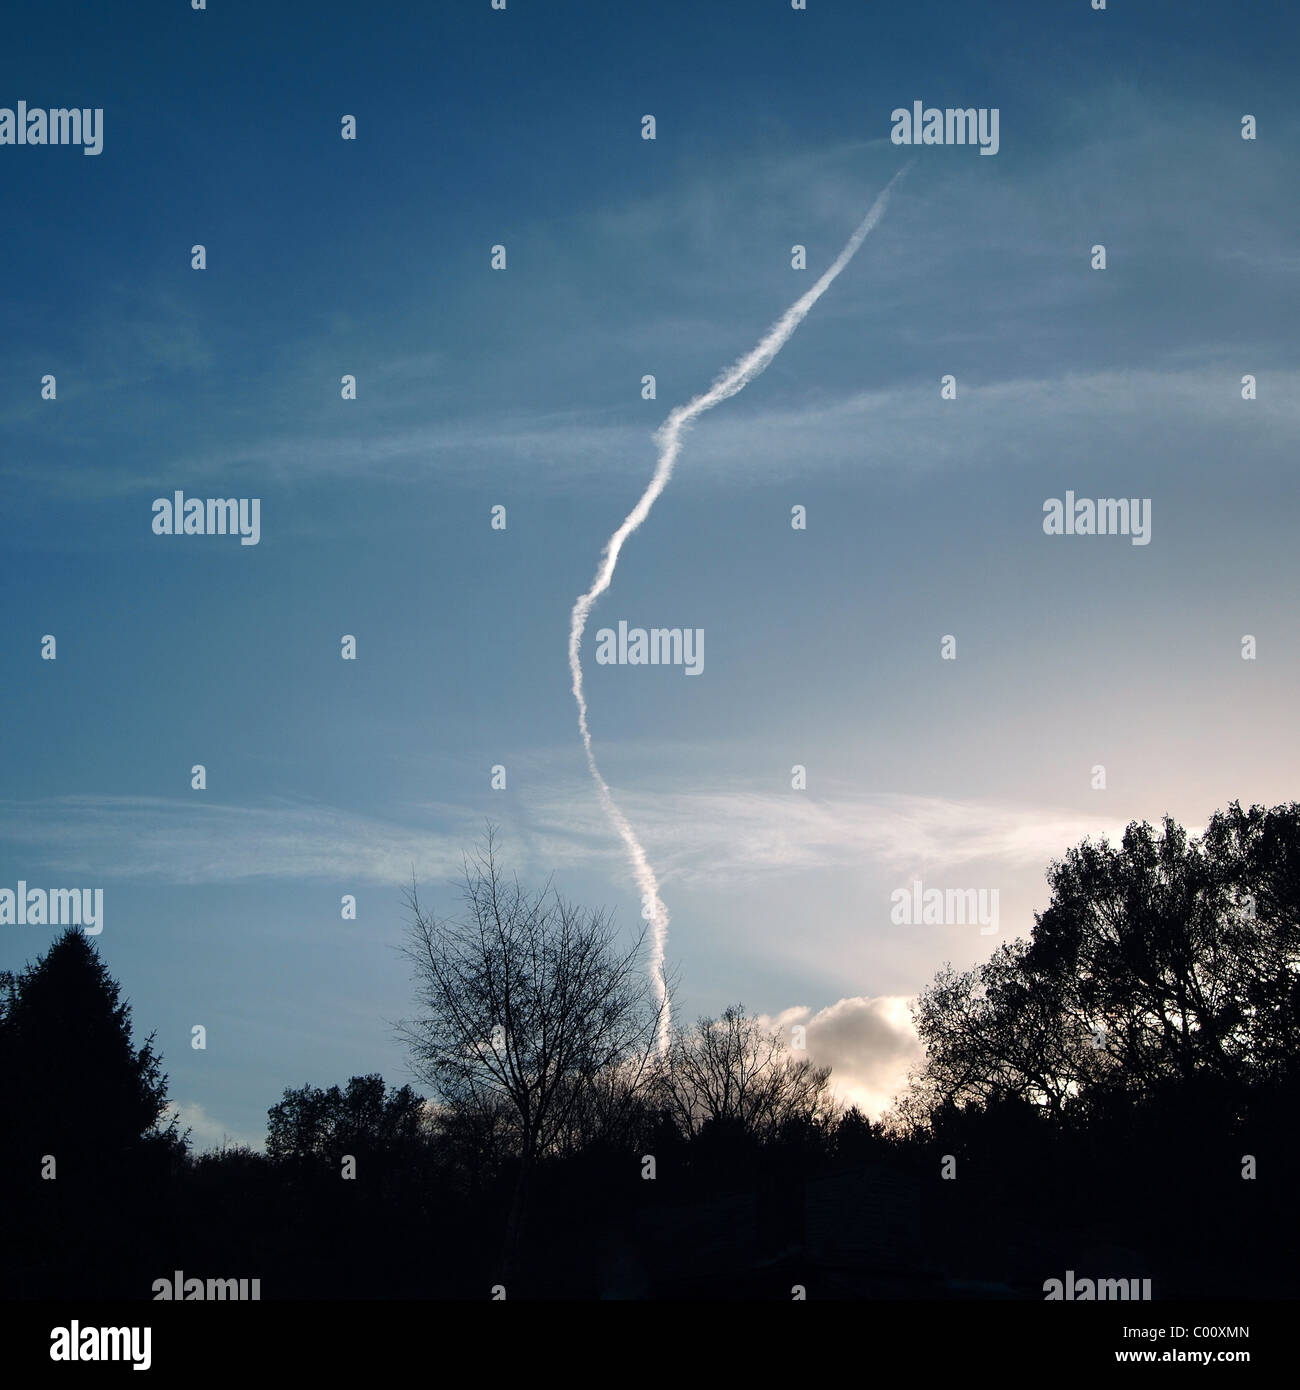 landscape image of a jet trail looking like lightning with setting sun Stock Photo